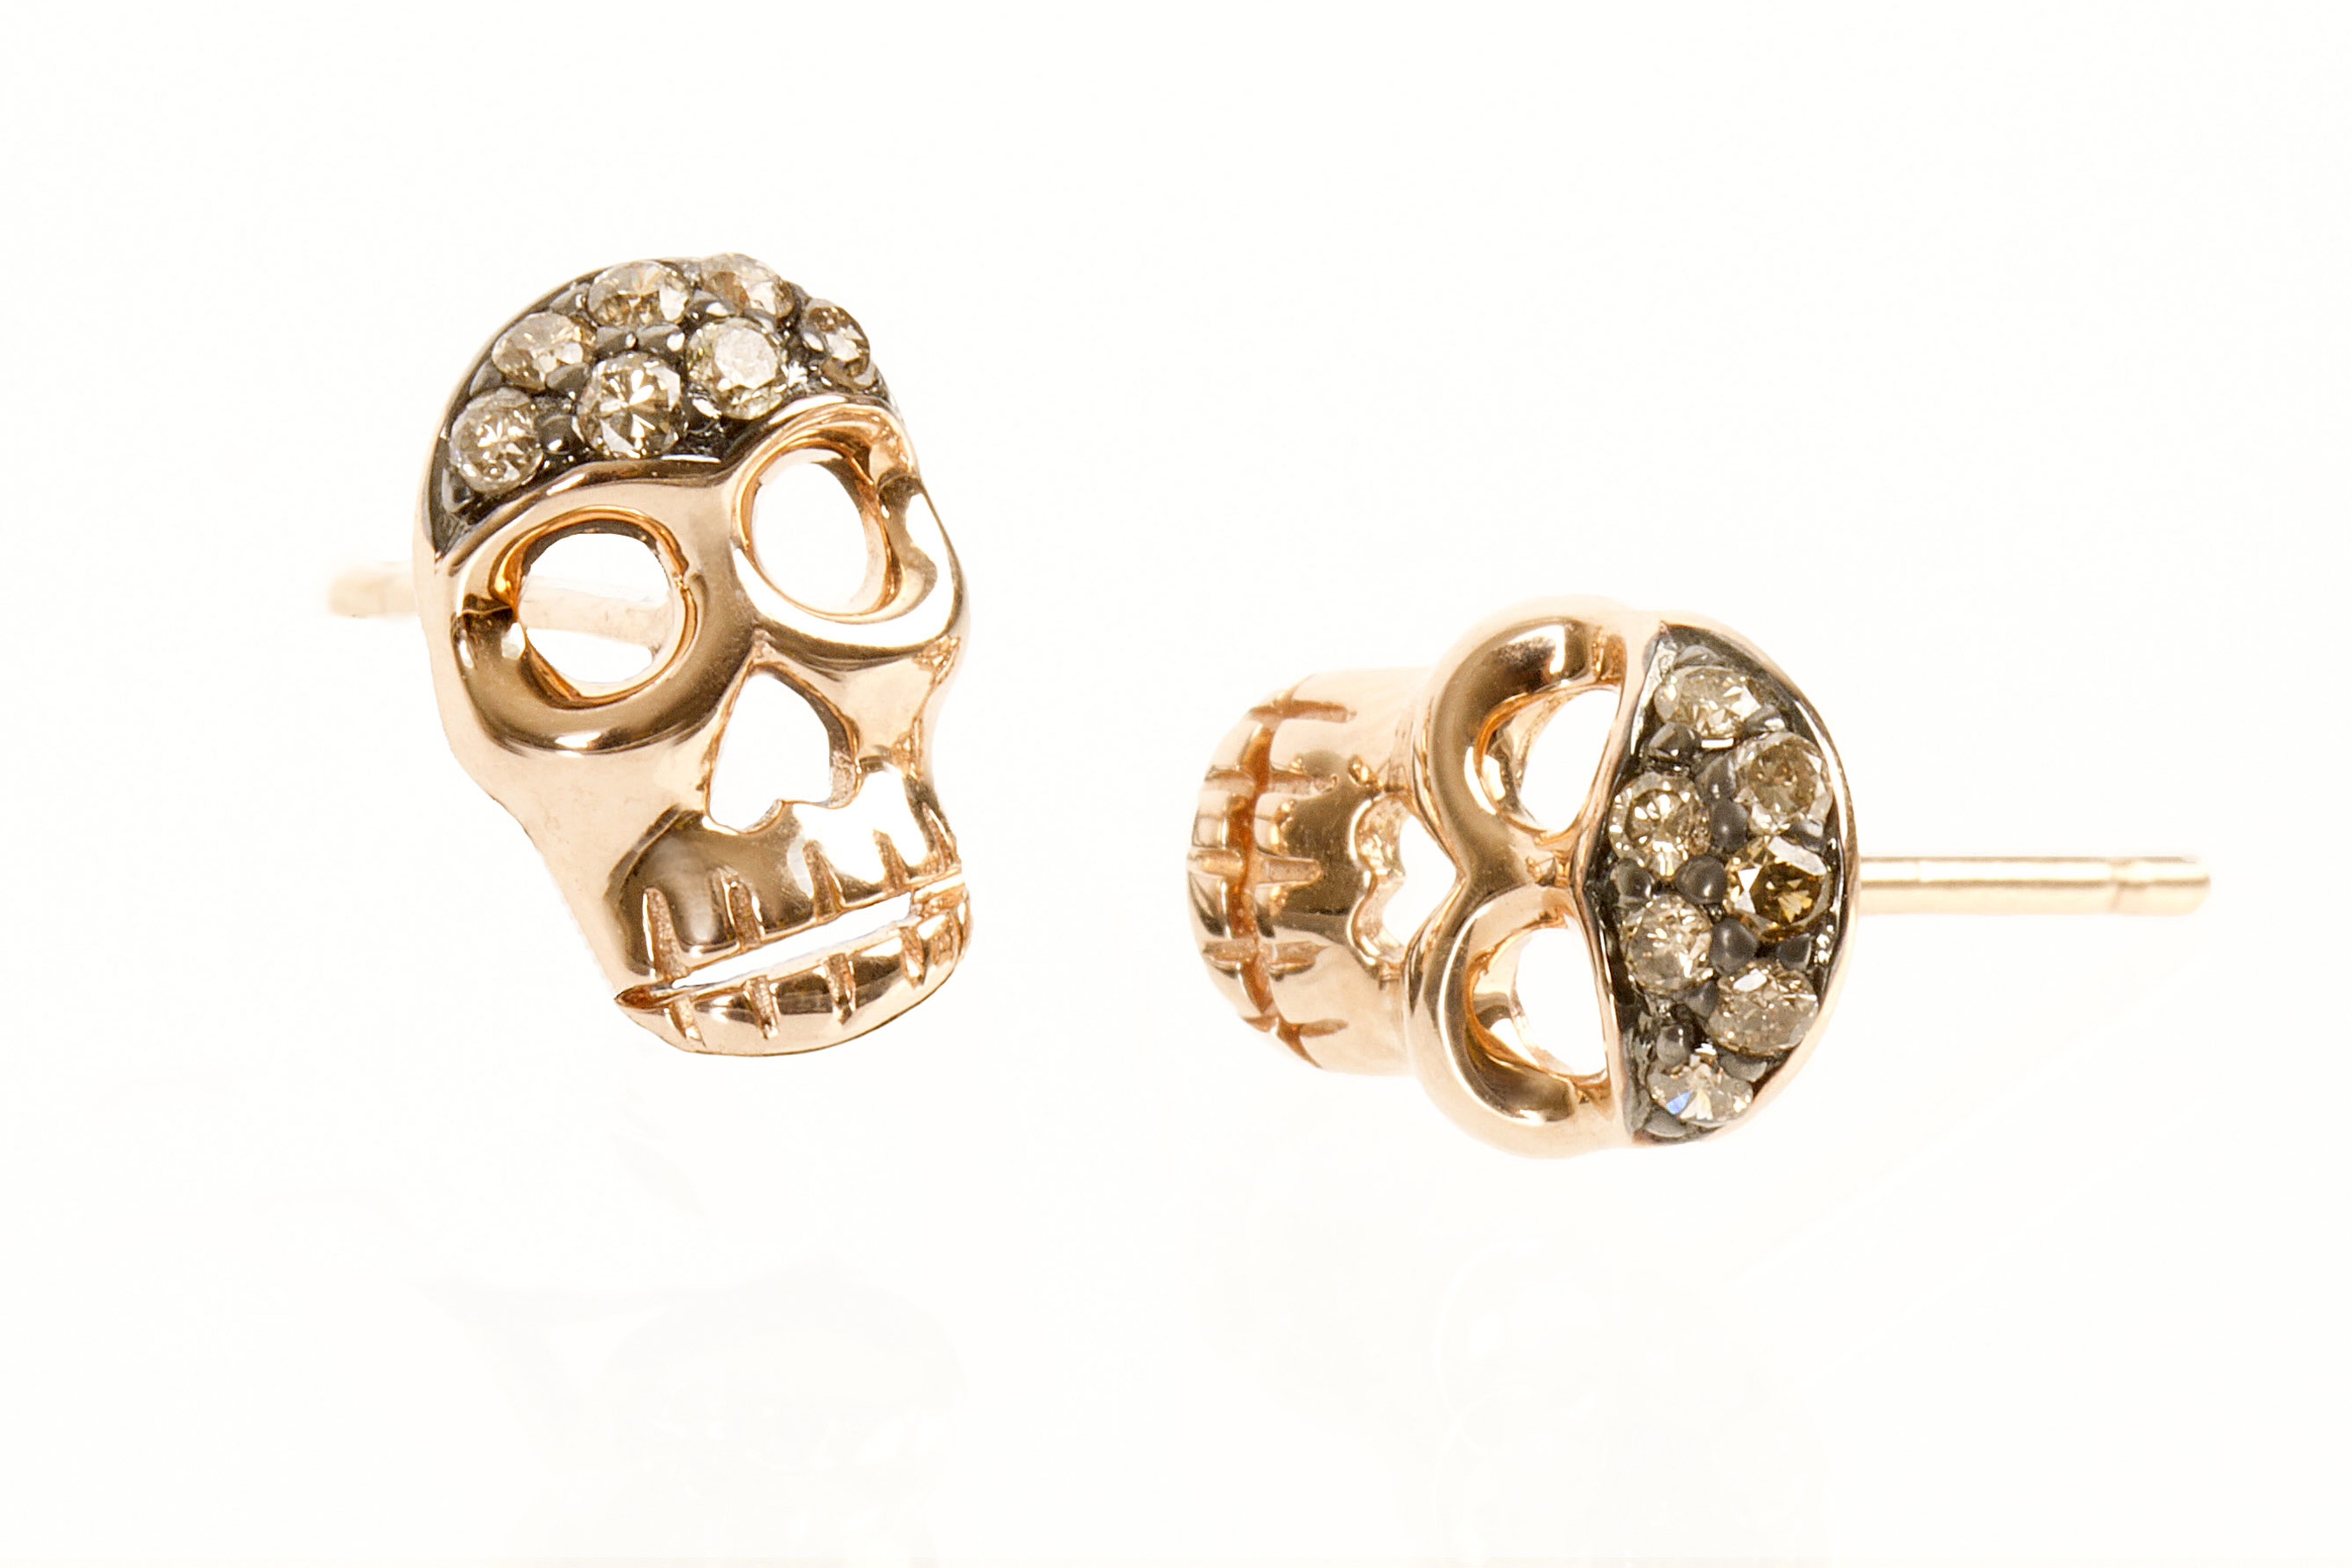 amie_alvarado_photography_los_angeles_product_photograpaher_jewelry+_skull_earin